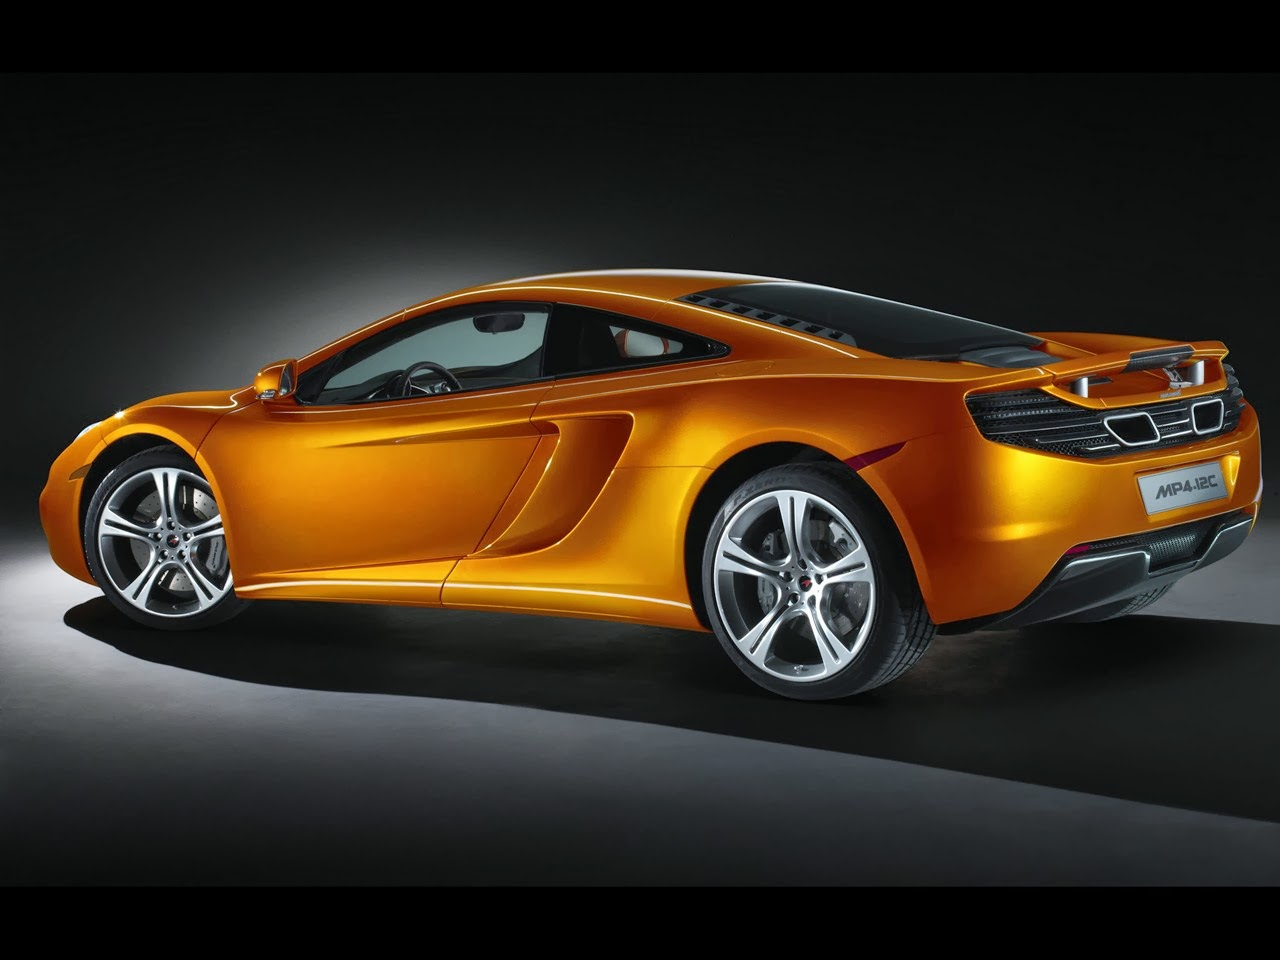 2014 Mclaren Mp4 12c Wallpaper Prices Worldwide For Cars